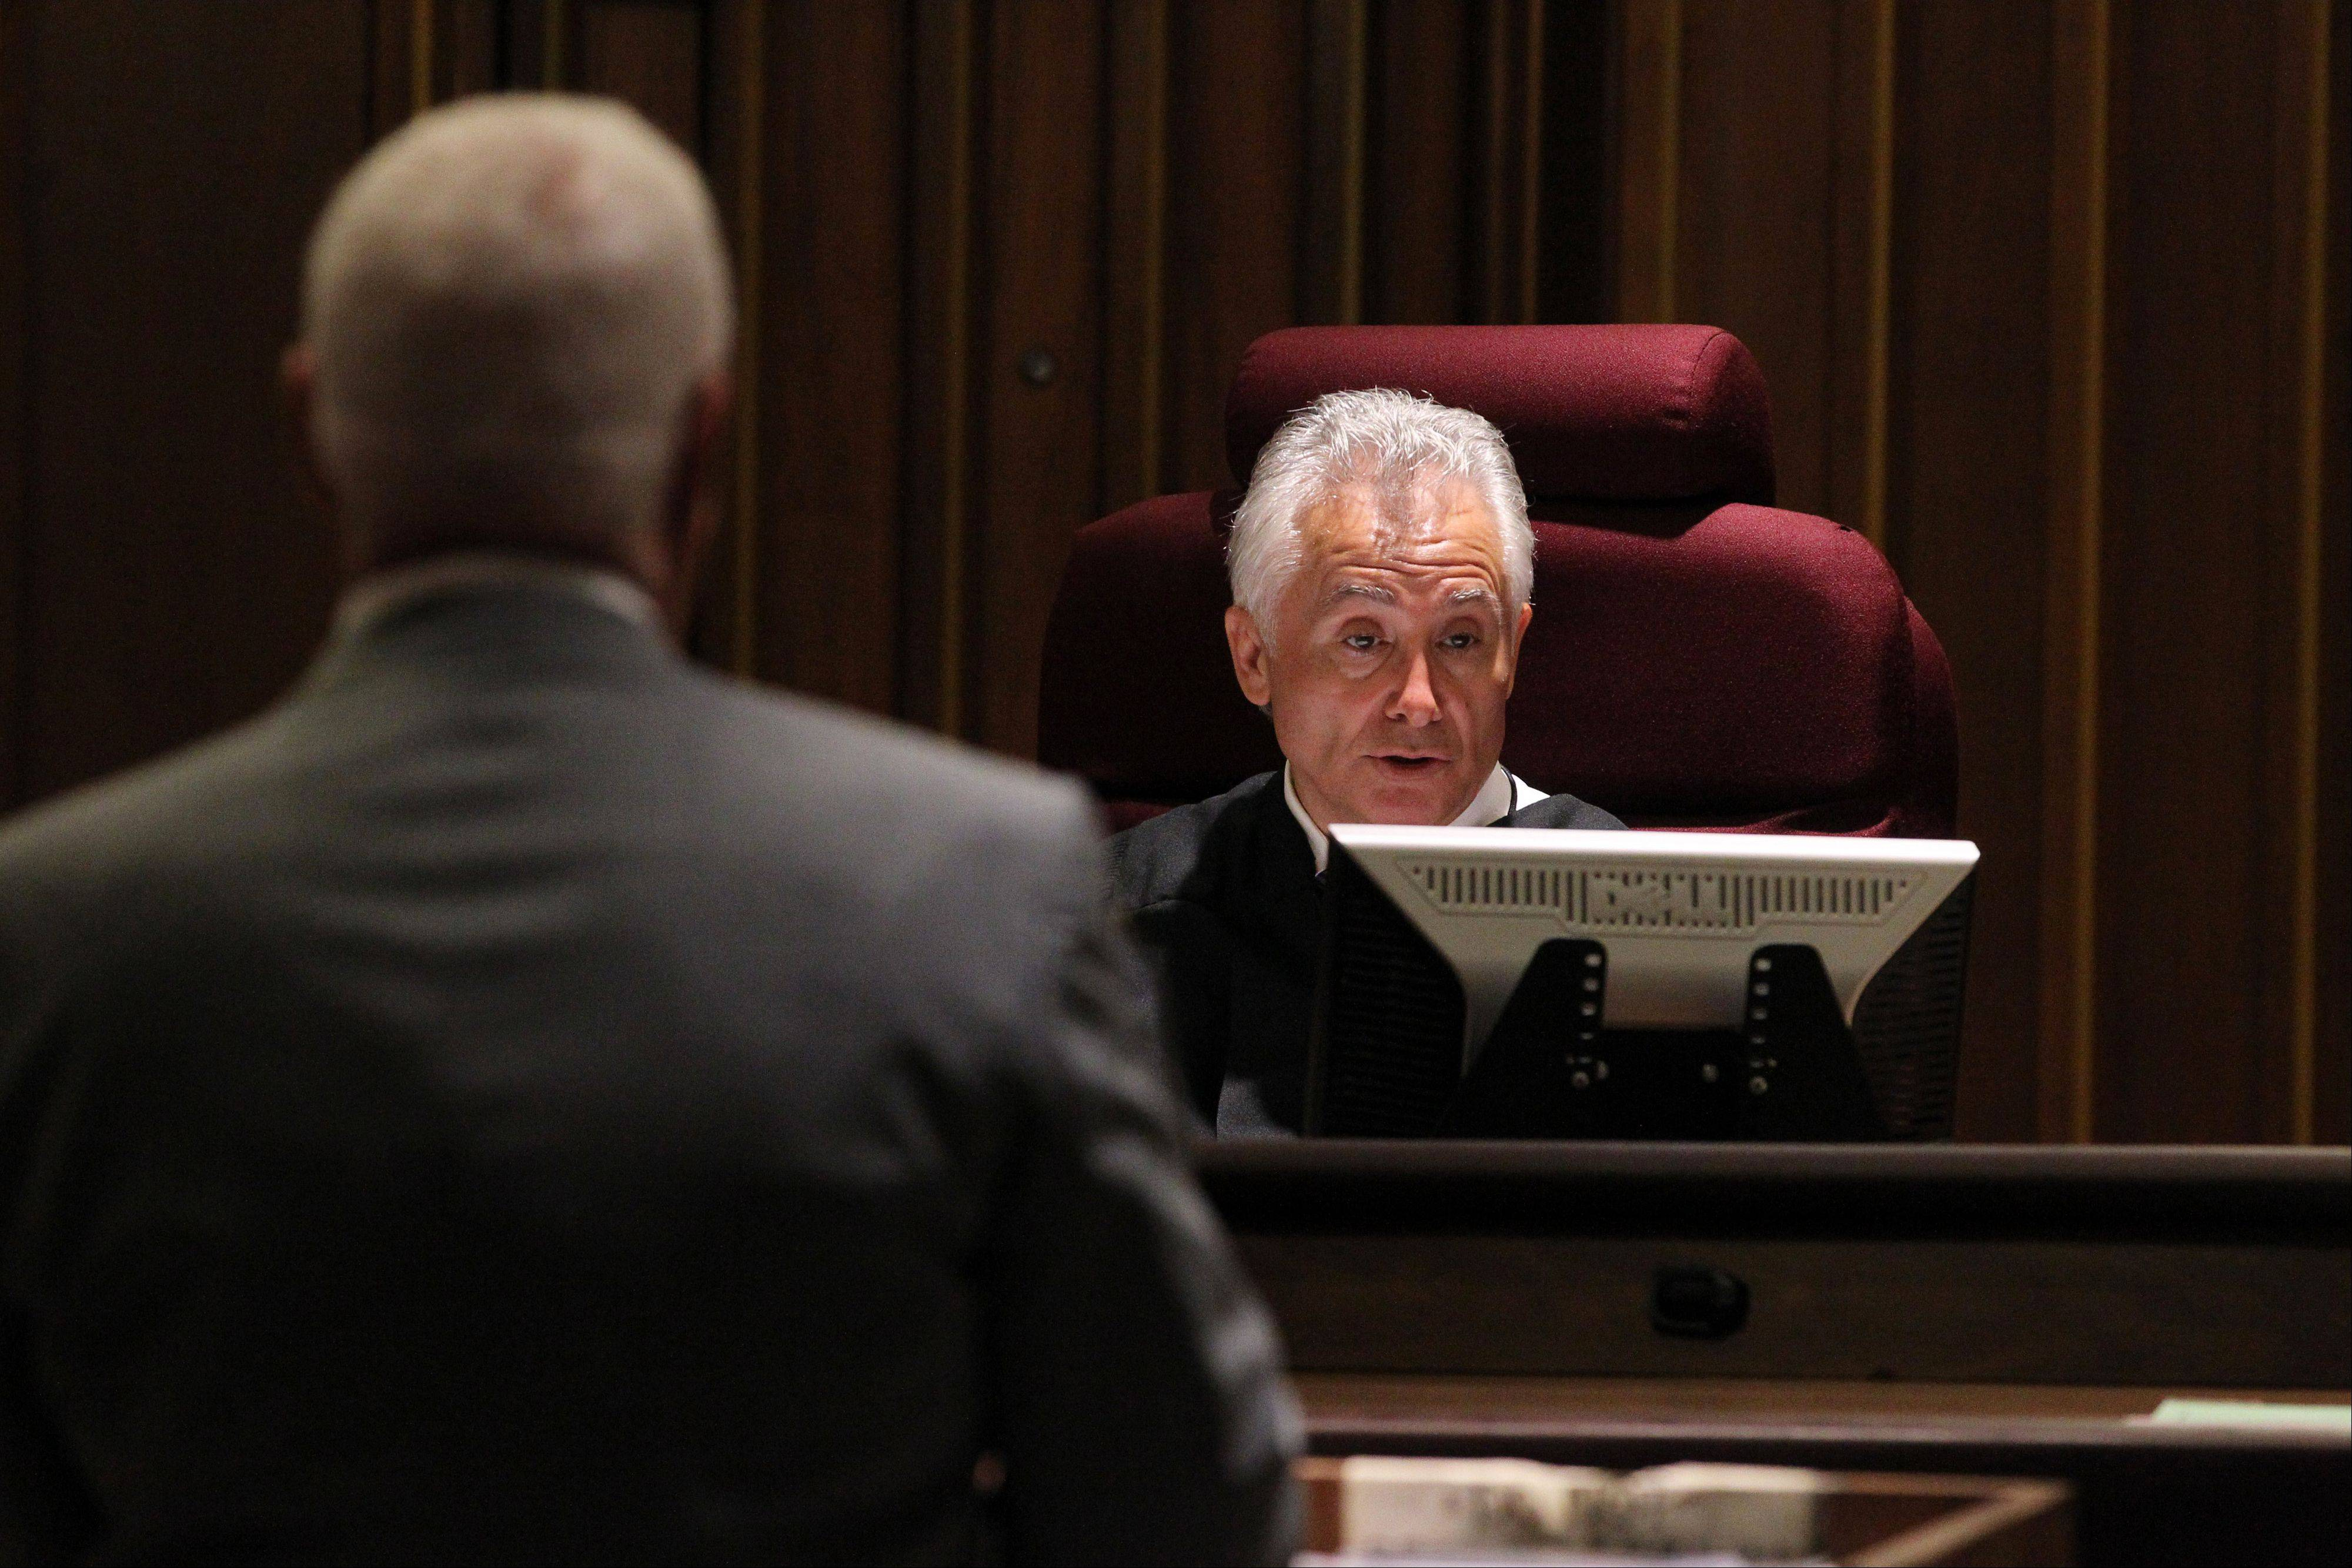 Douglas Zeit, left, attorney for Carly Rousso, stands before Lake County Judge James Booras during a hearing for his client on Tuesday. Rousso was not in court because, Zeit said, she has been admitted into an inpatient treatment center in Chicago. Her trial is to begin later this year.